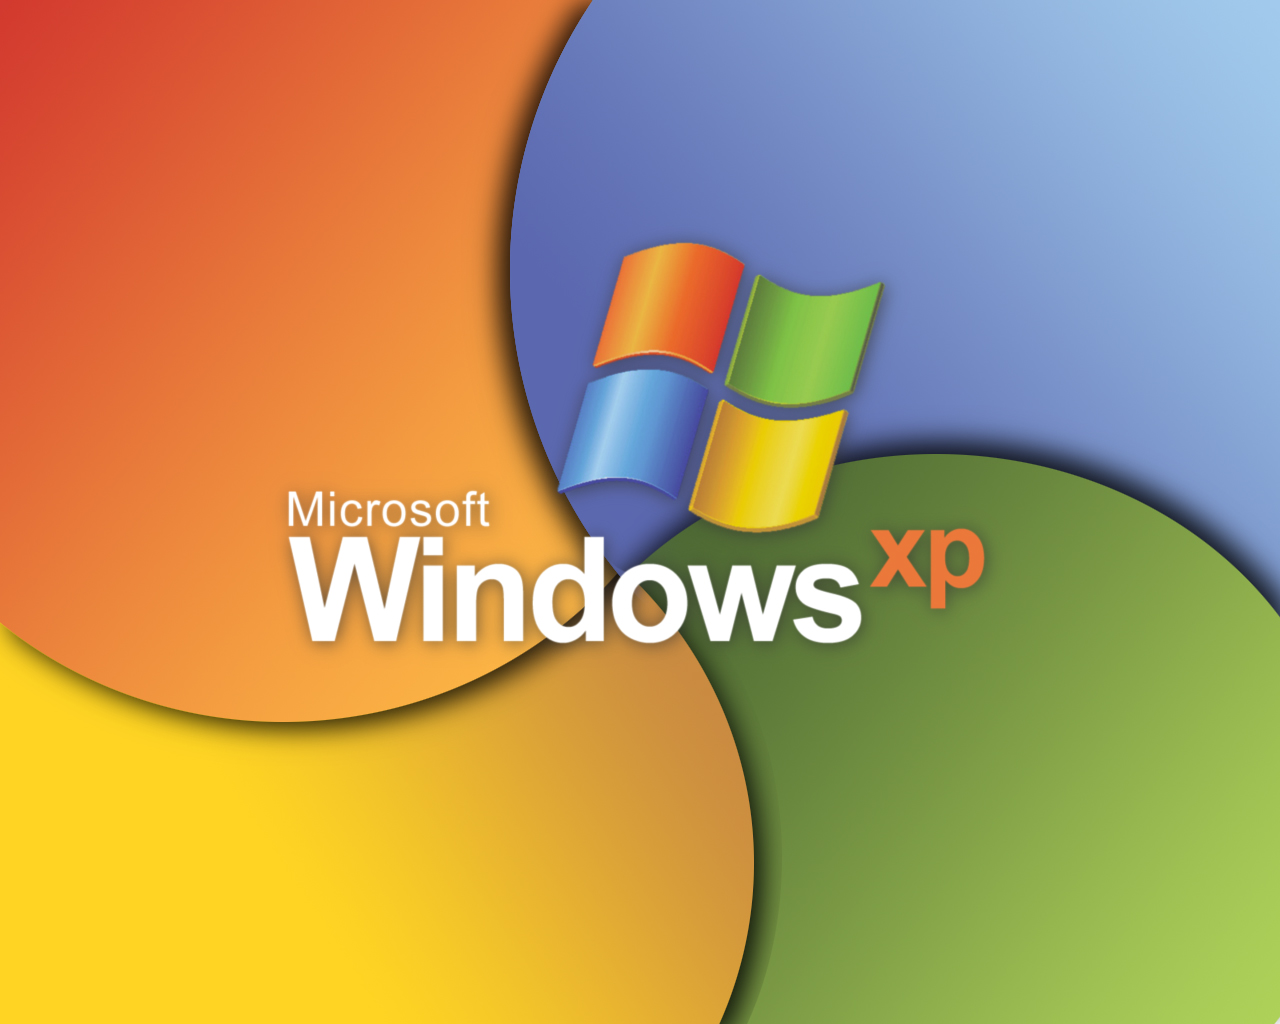 microsoft finally ends support for windows xp after 13 years techfruit